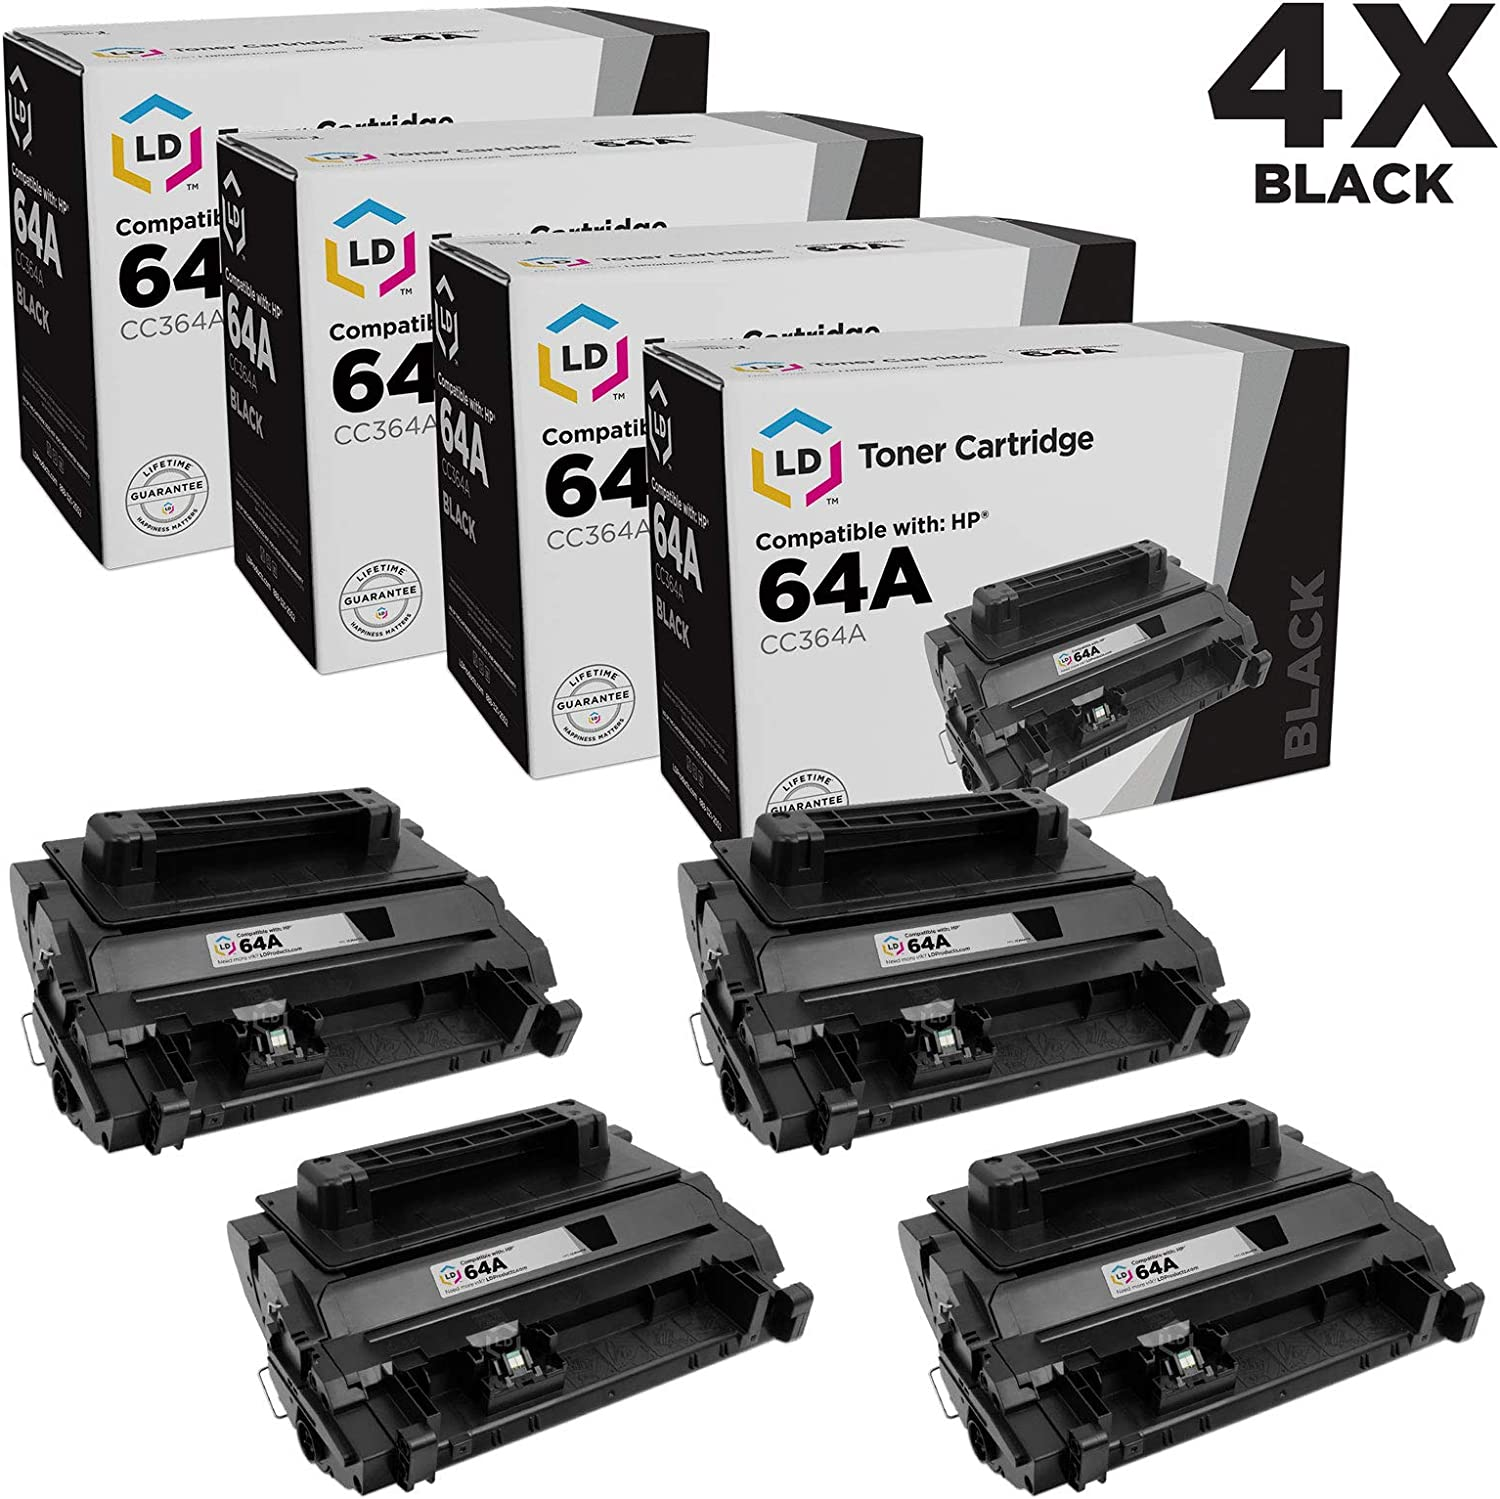 LD Compatible Toner Cartridge Replacement for HP 64A CC364A (Black, 4-Pack)